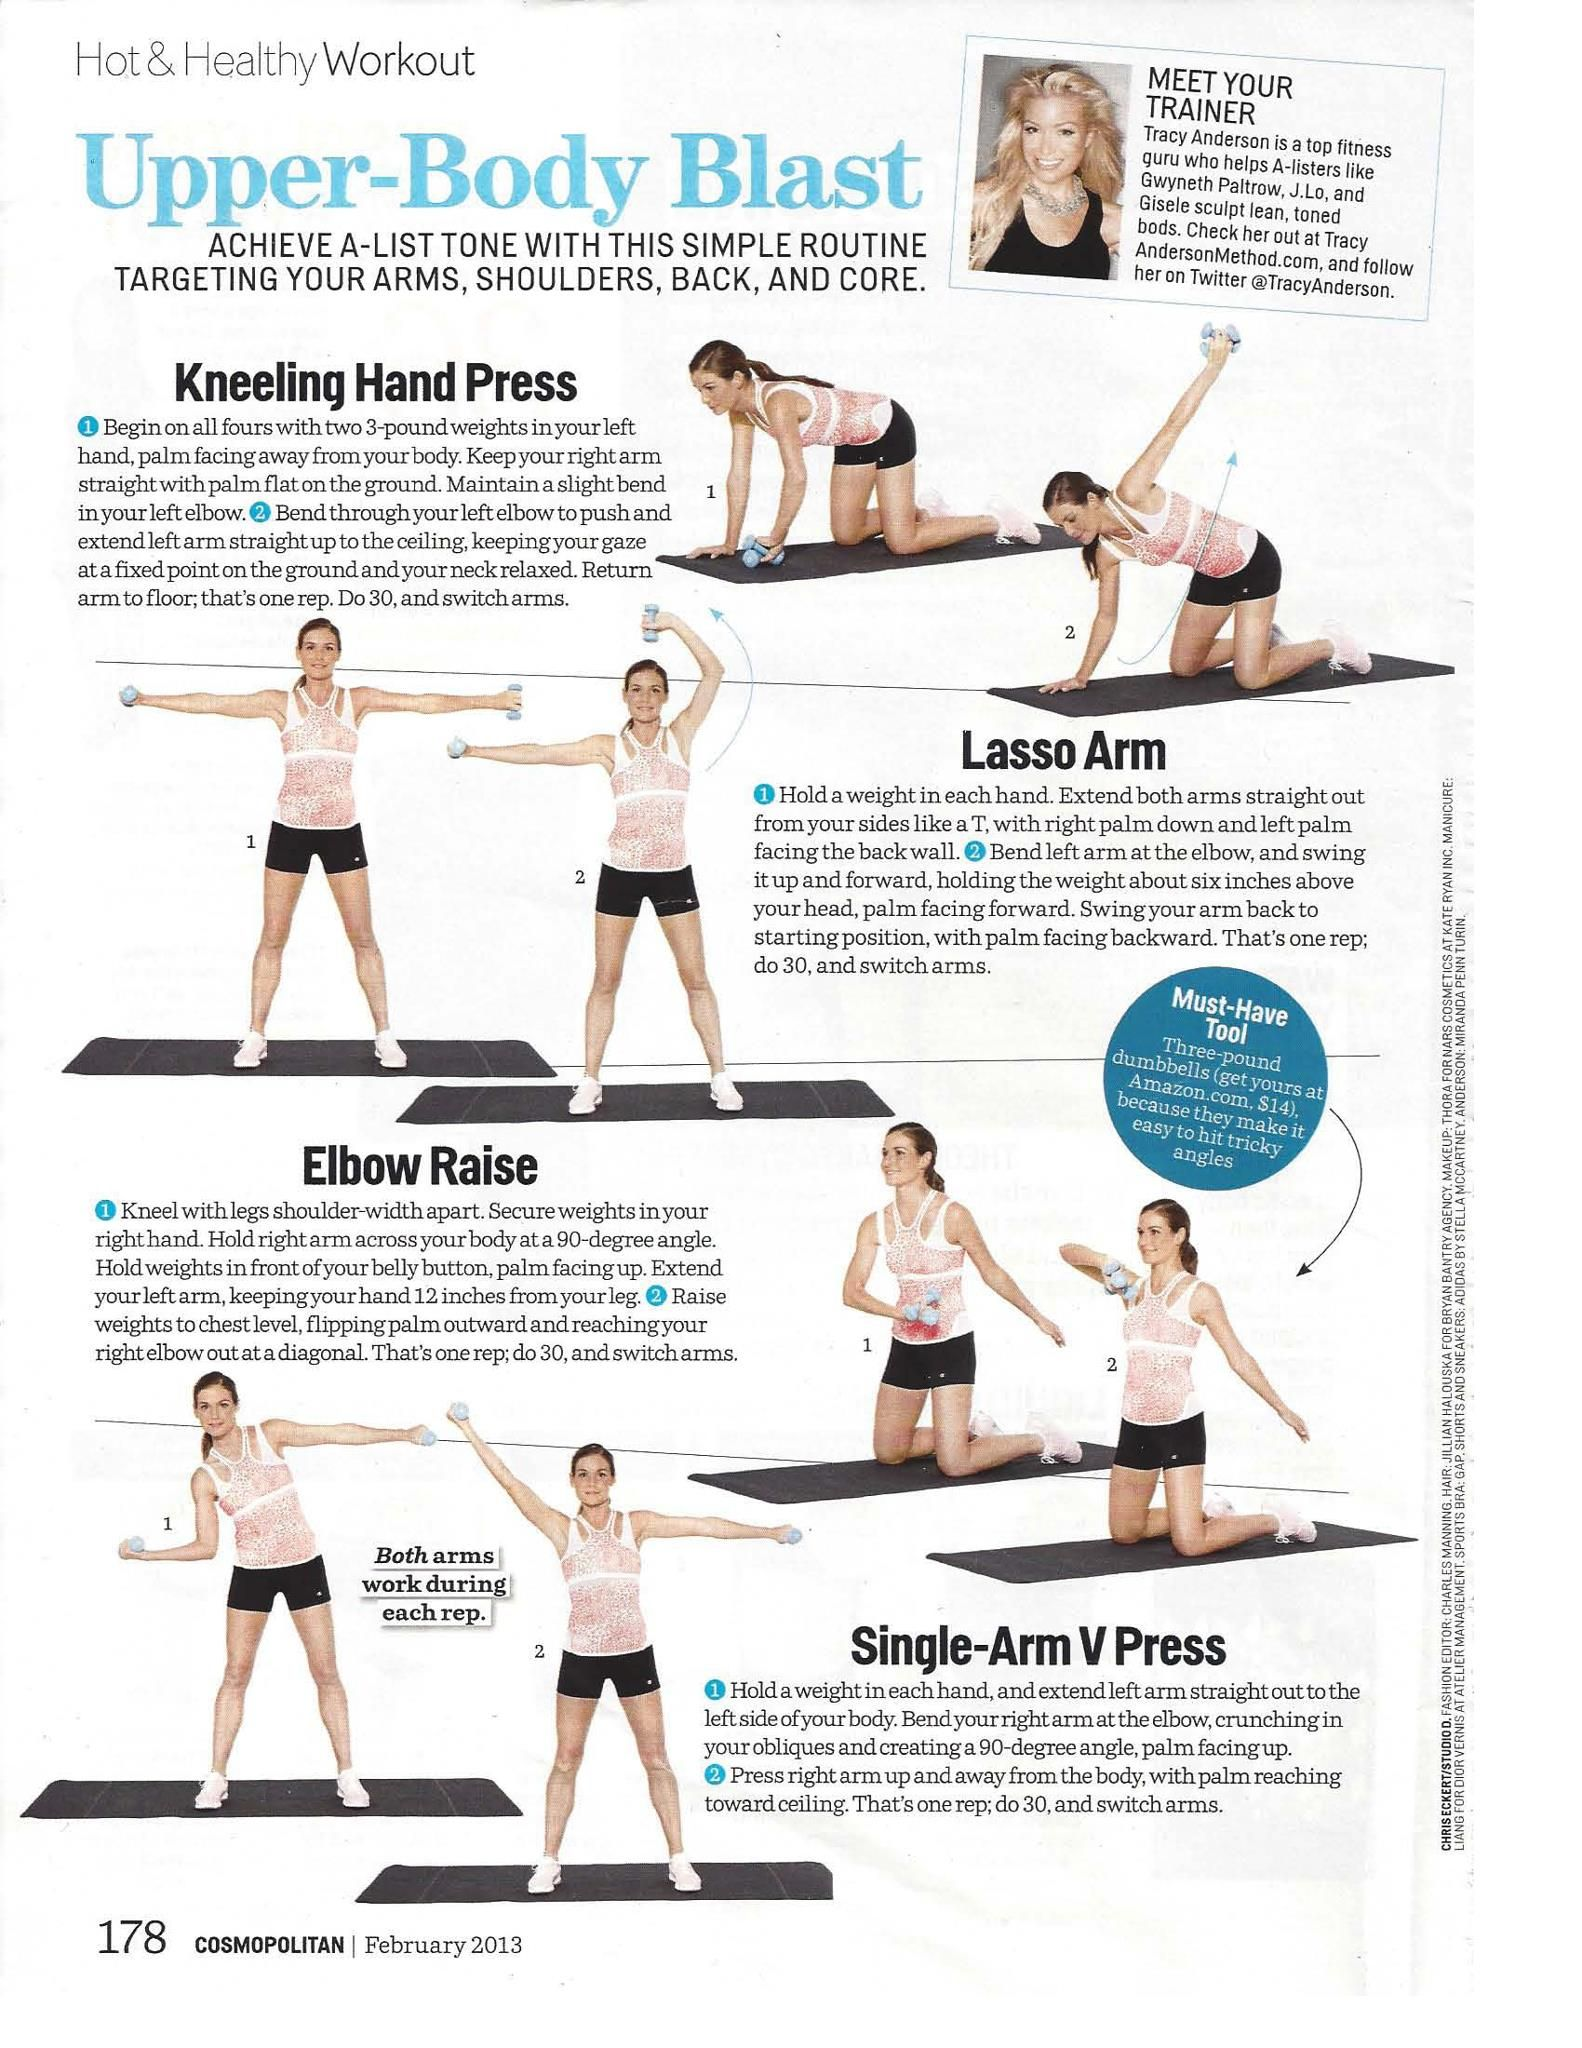 Lose 12 Inches With Any 12 Workouts : inches, workouts, Tracy, Anderson, Upper, Blast, Workout, Workout,, Anderson,